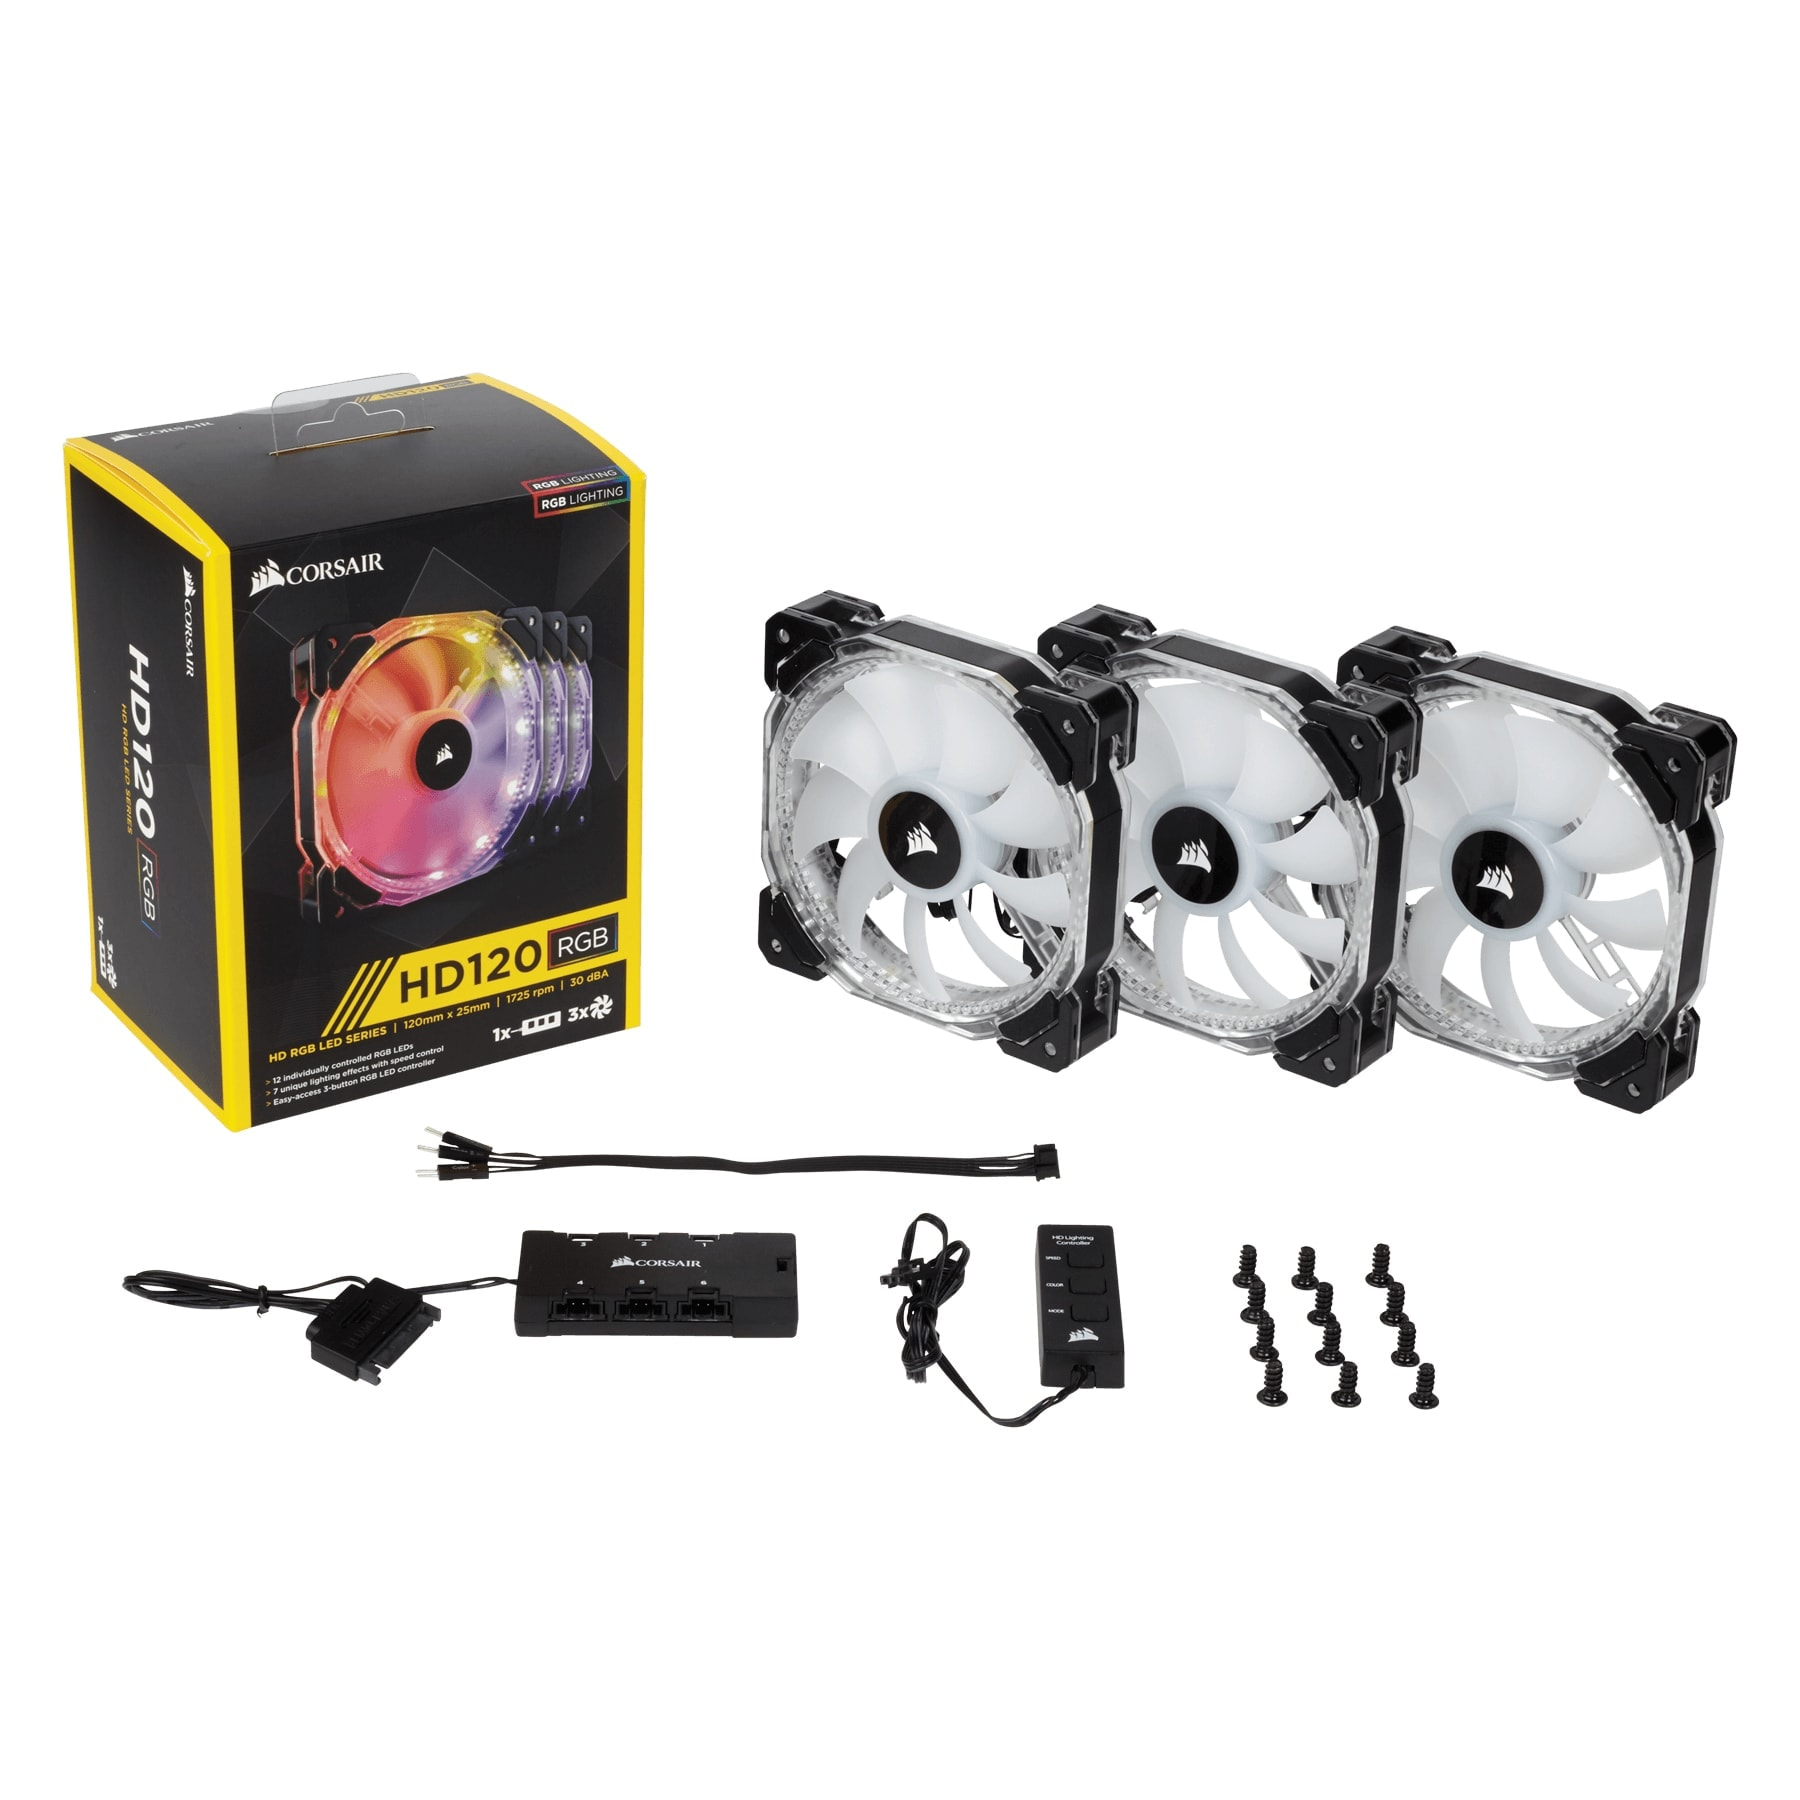 Corsair HD120 RGB (Pack de 3) Individually Adressable LED Static Pressure Fan with Controller (CO-9050067-WW) - Achat / Vente Ventilateur sur Cybertek.fr - 0